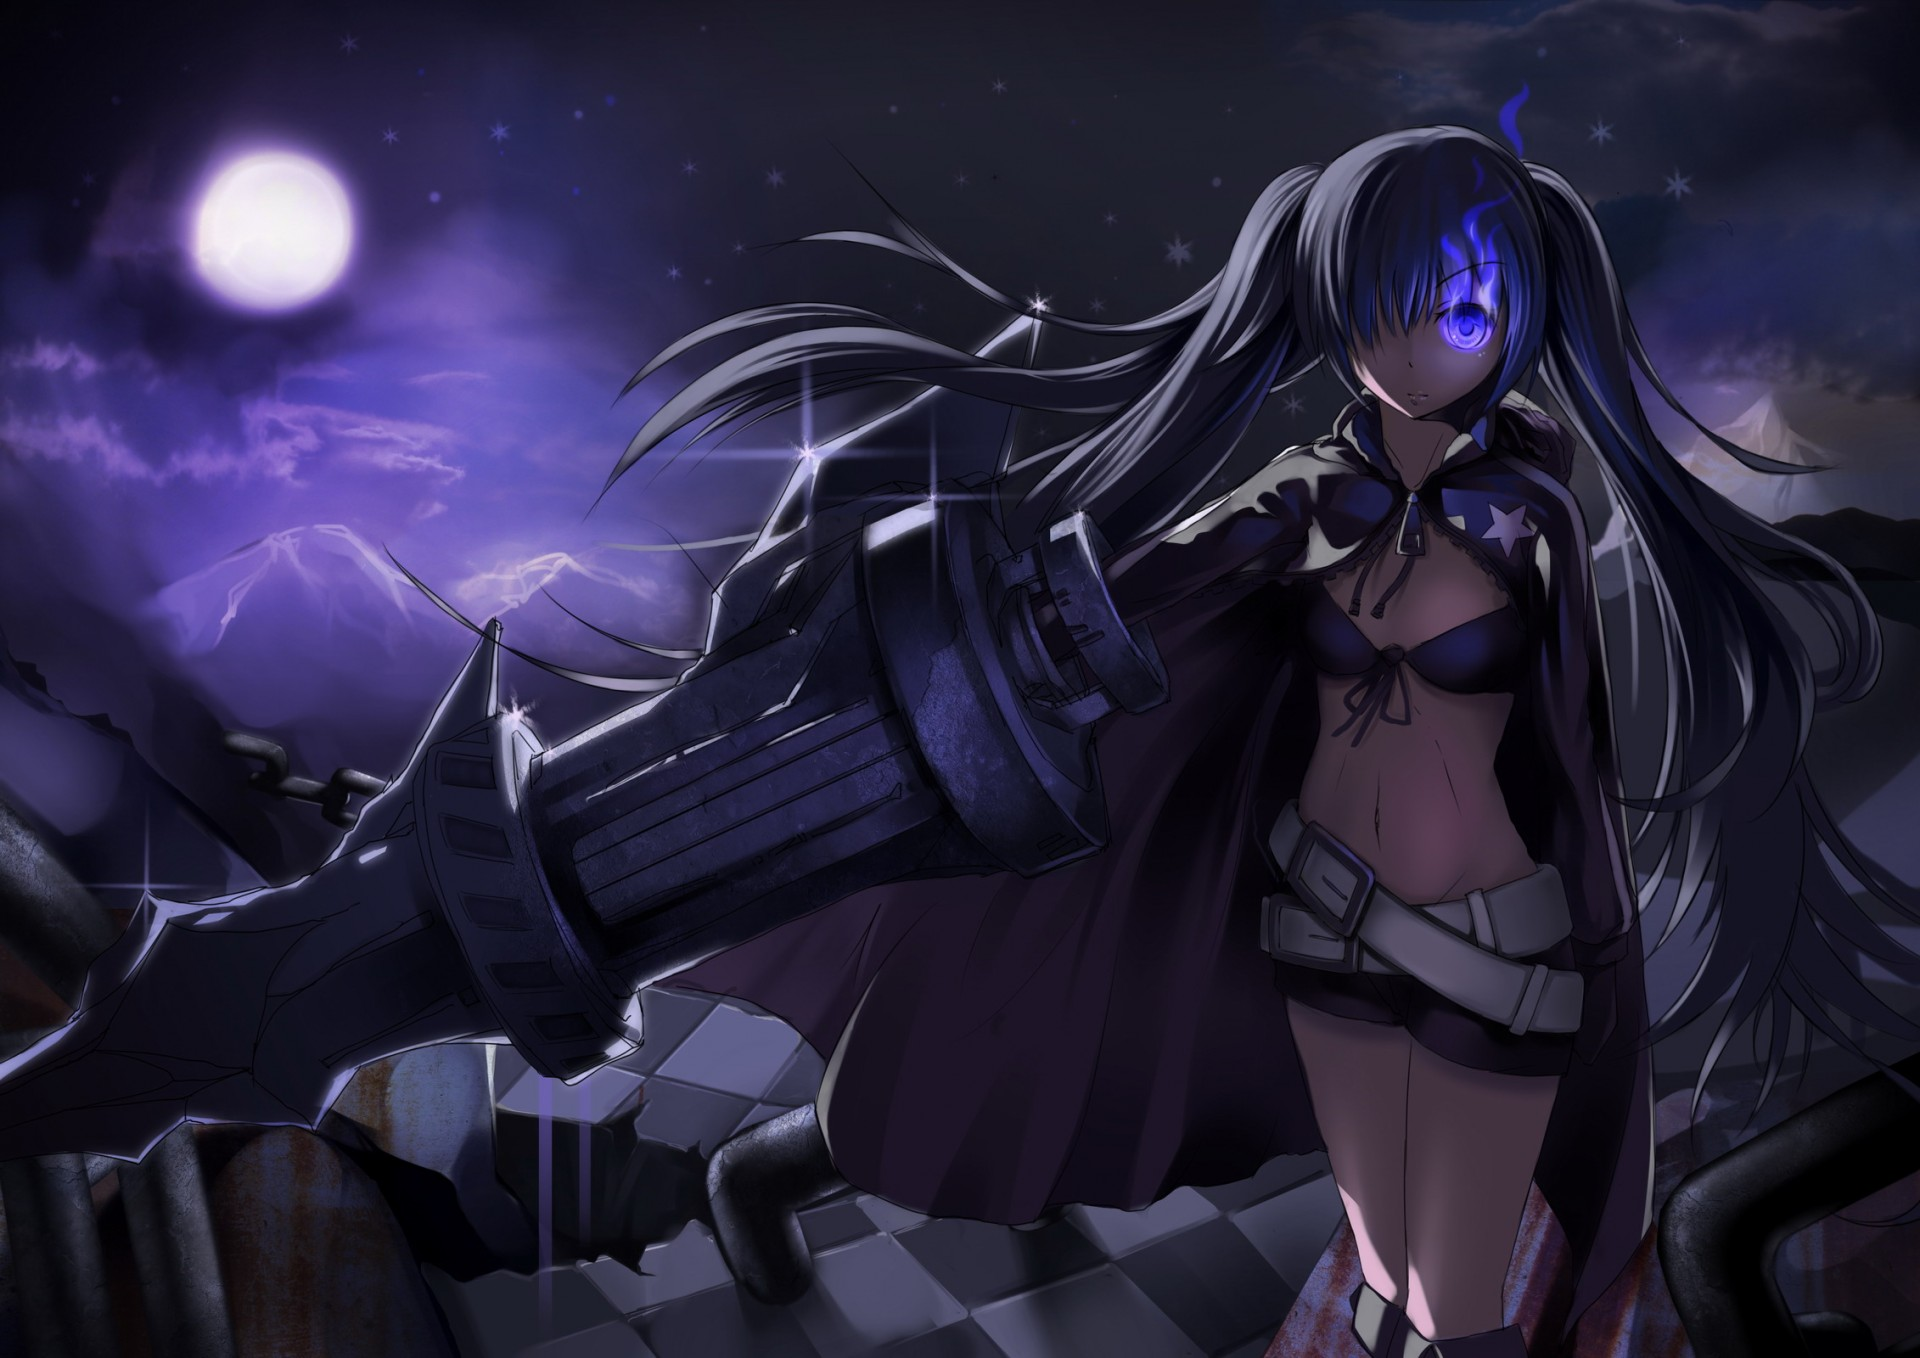 black rock shooter dark gun moon sky